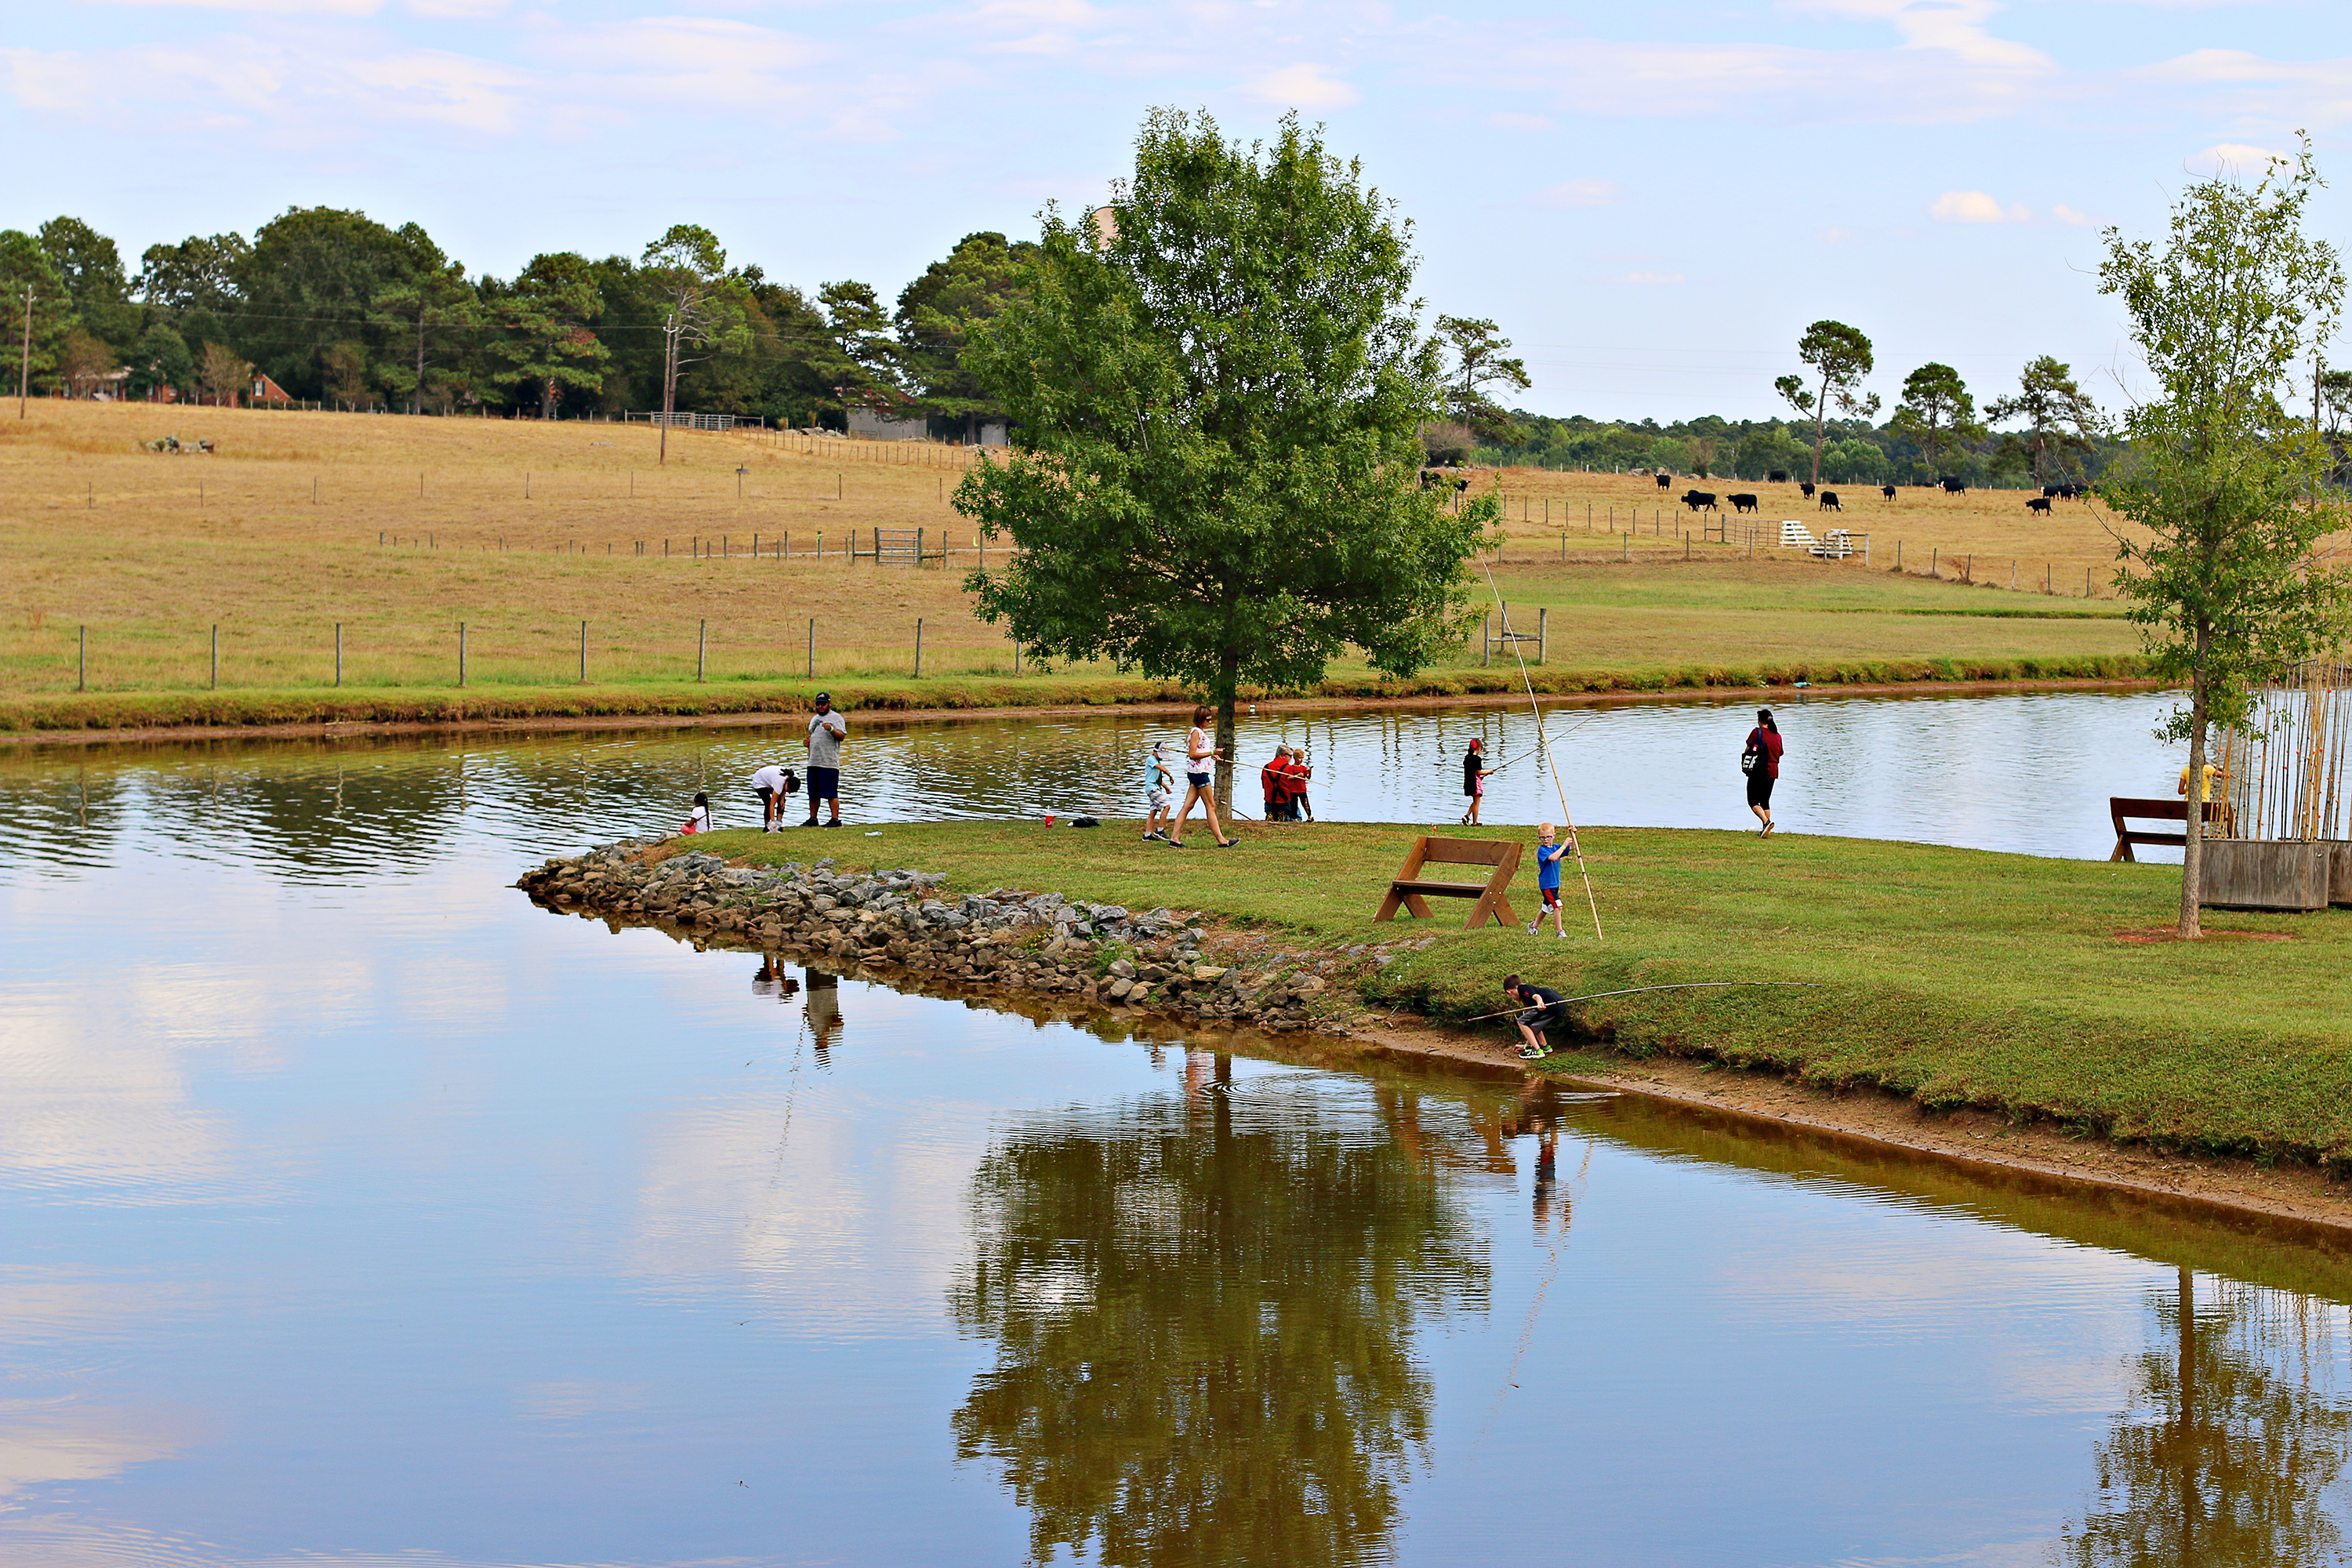 Families fishing at The Rock Ranch.